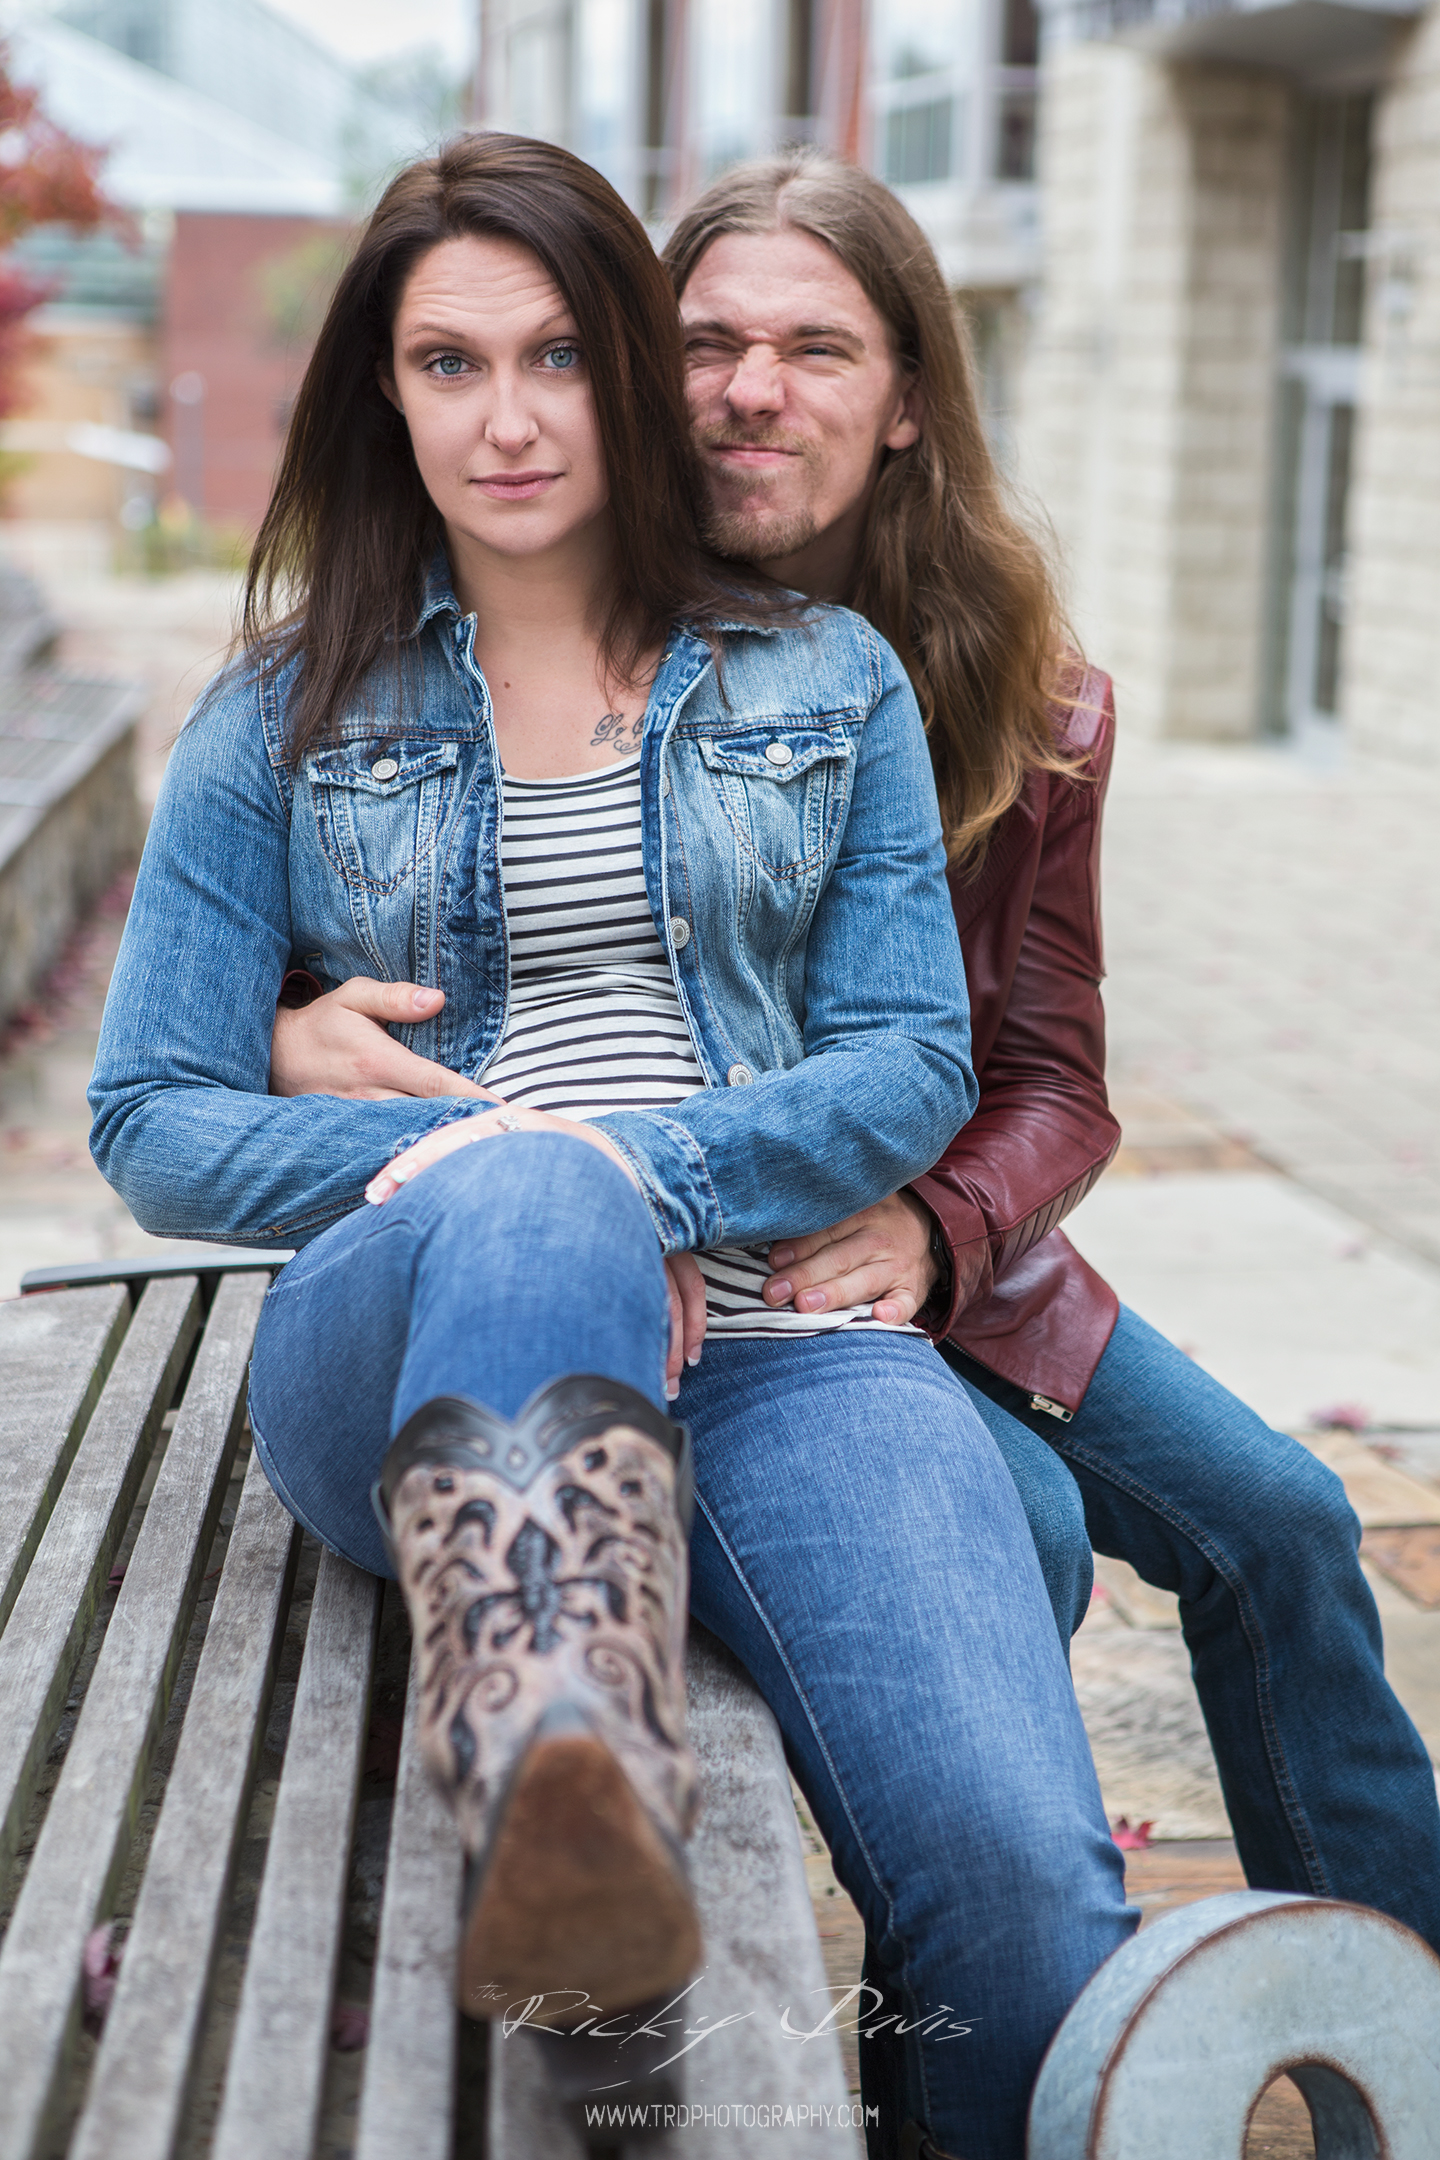 Chattanooga - Coolidge Park - Engagement Session - Mandy & Justin - TRD Photography